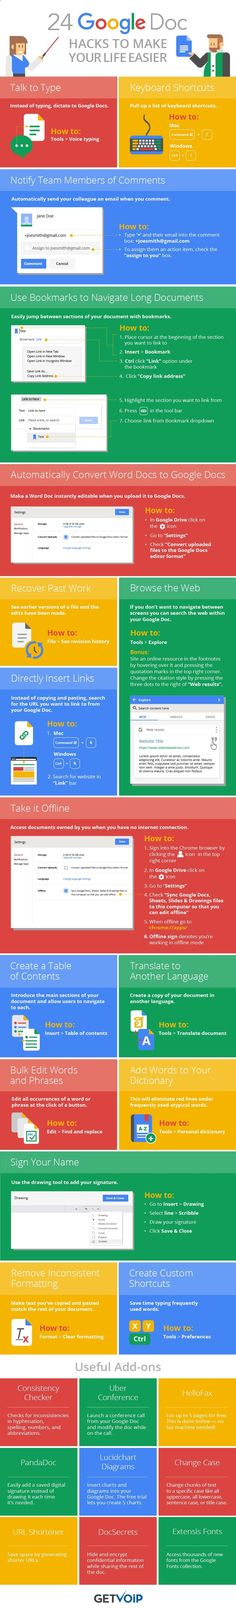 24 Google Doc Hacks to Make Running Your Business Easier [Infographic] - topseosoft.com/...